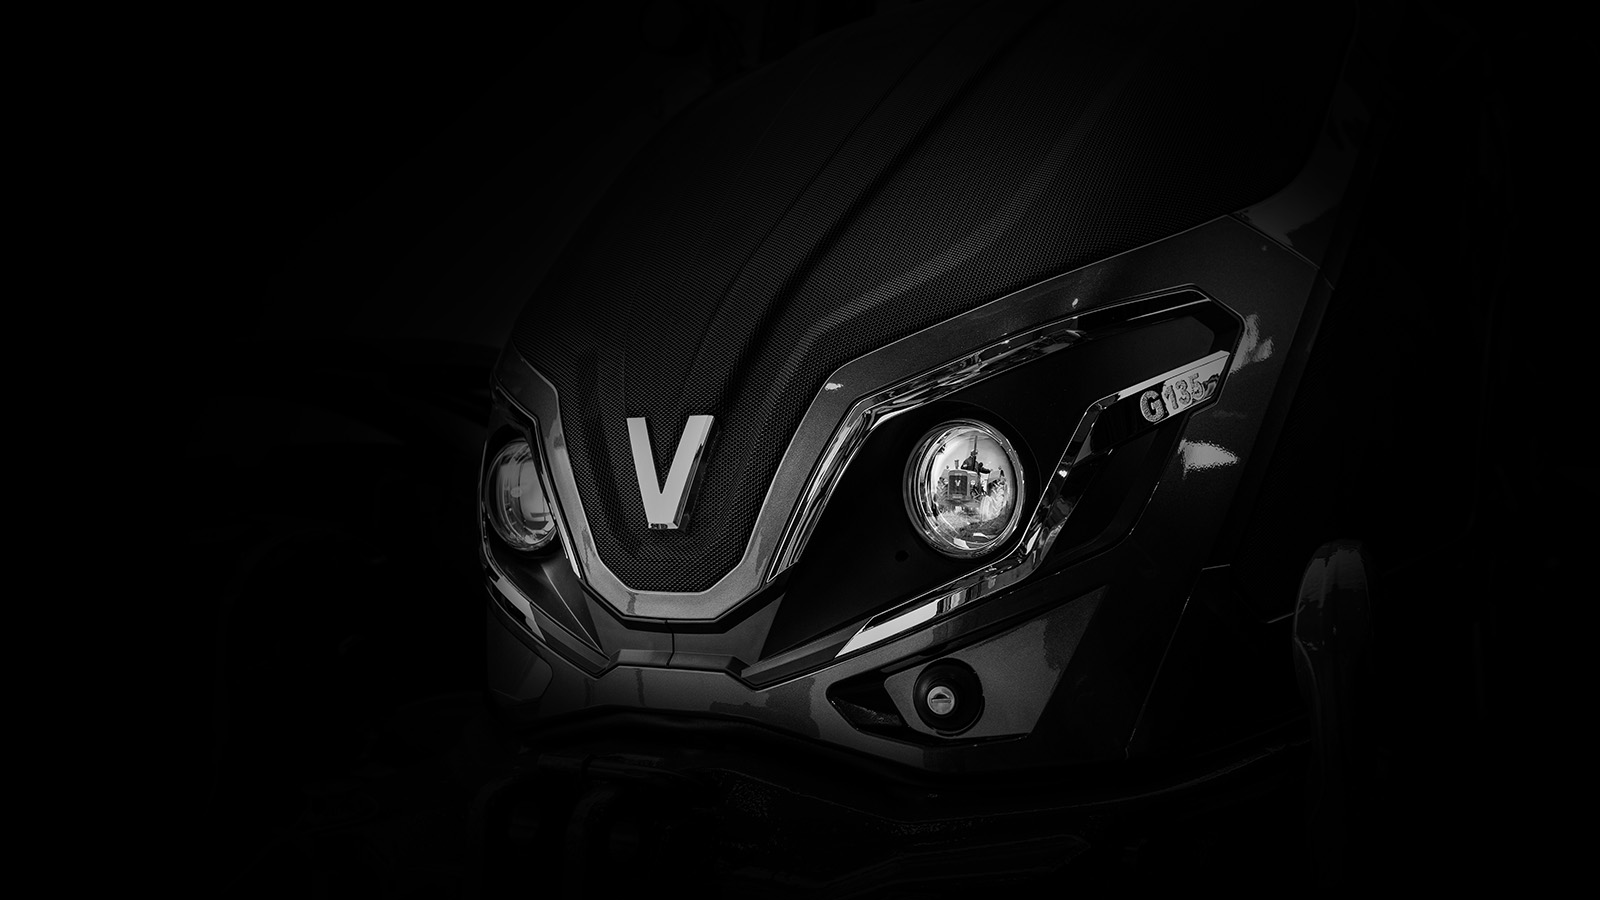 Valtra 2021 Product launch front page hero image